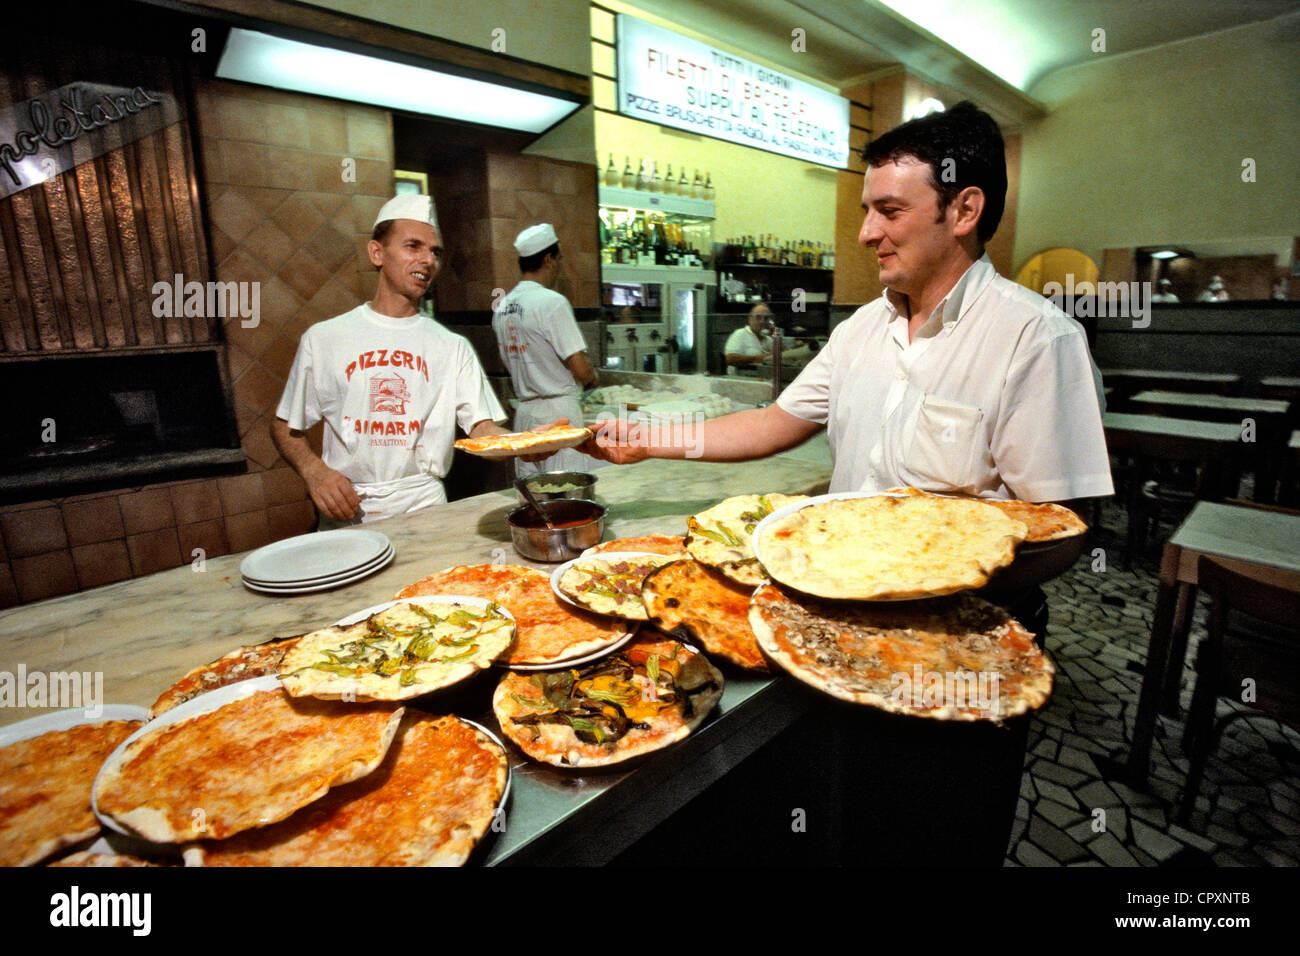 Italy, Lazio, Rome, Trastevere, the Pizzeria Panattoni is famous with its thirty pizzas served every three minutes - Stock Image